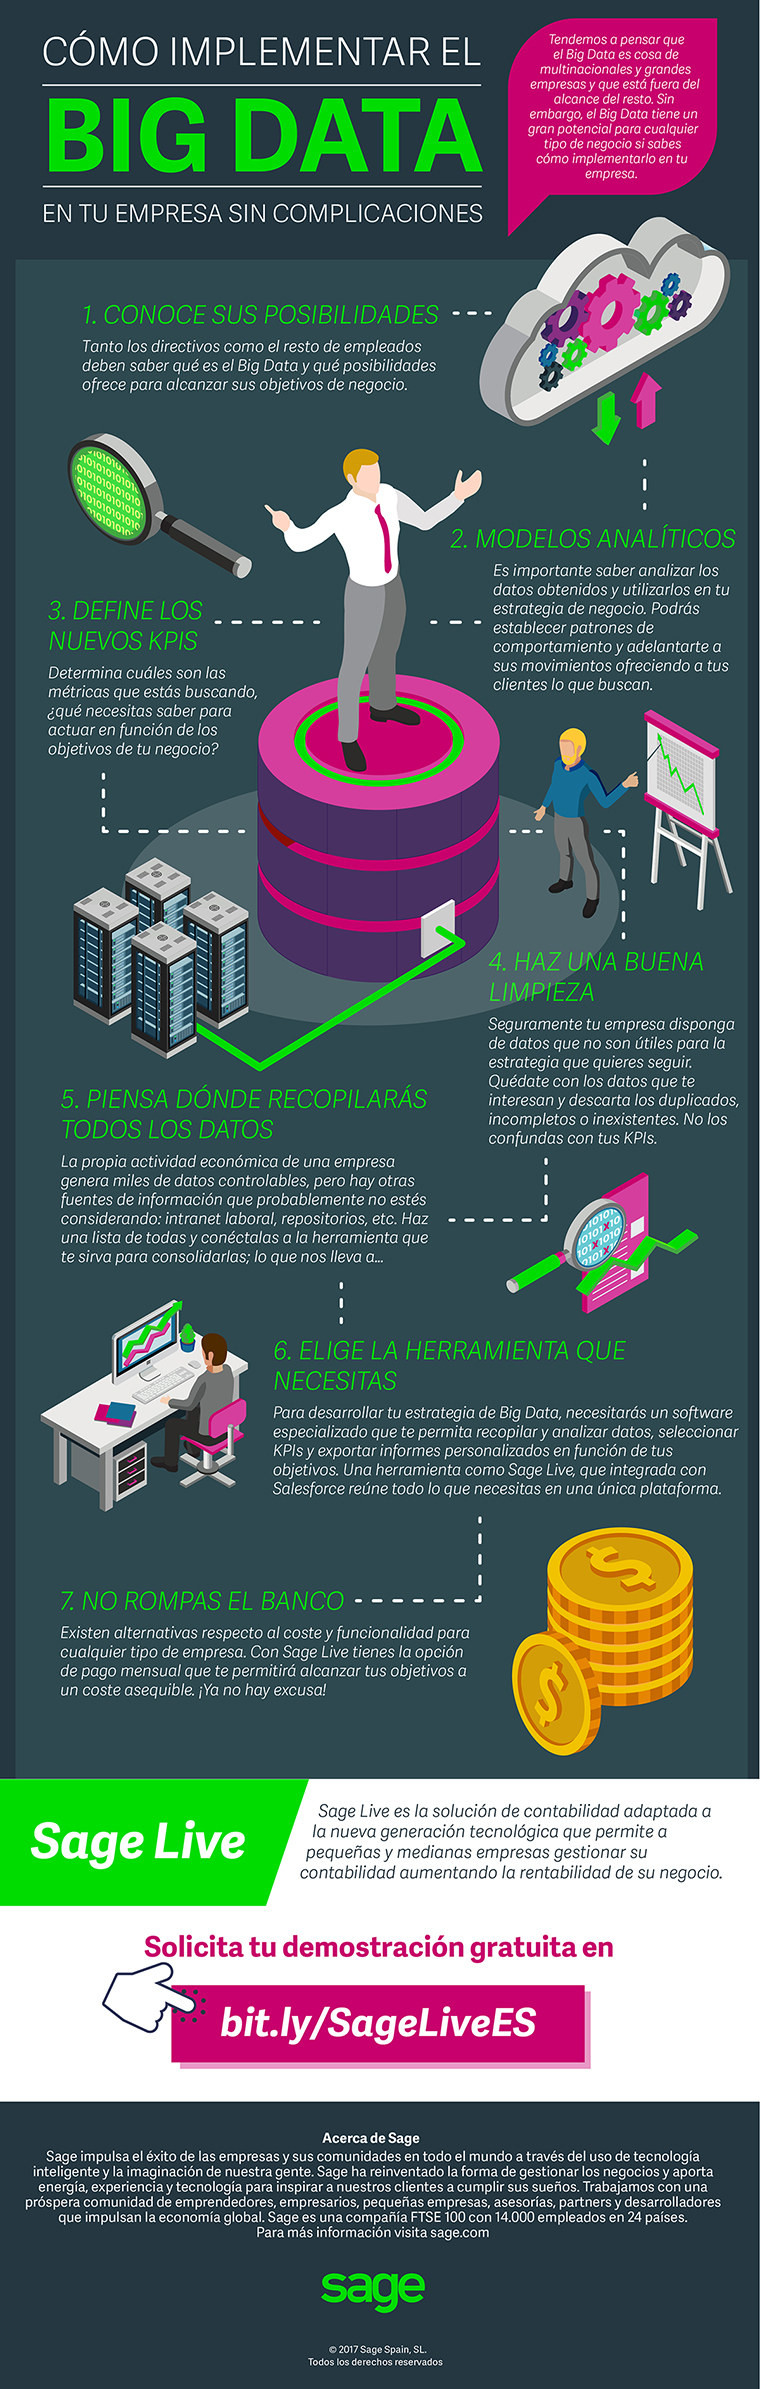 Cómo implementar Big Data en tu empresa #infografia #infographic